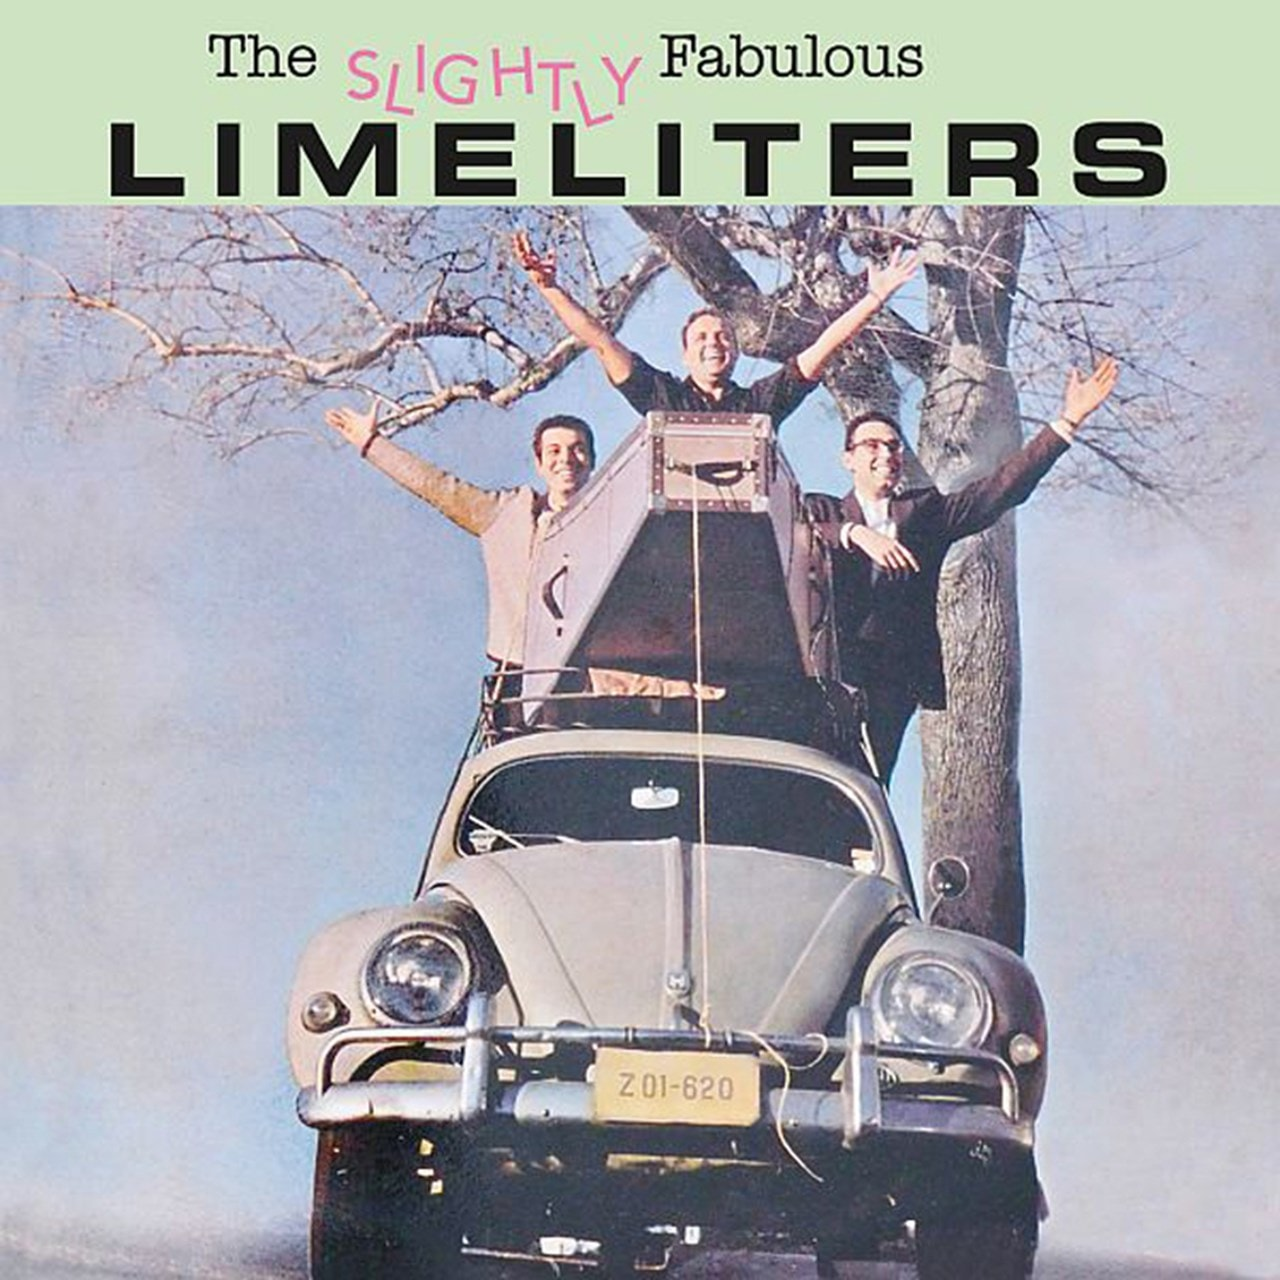 The Slightly Fabulous Limeliters - 1